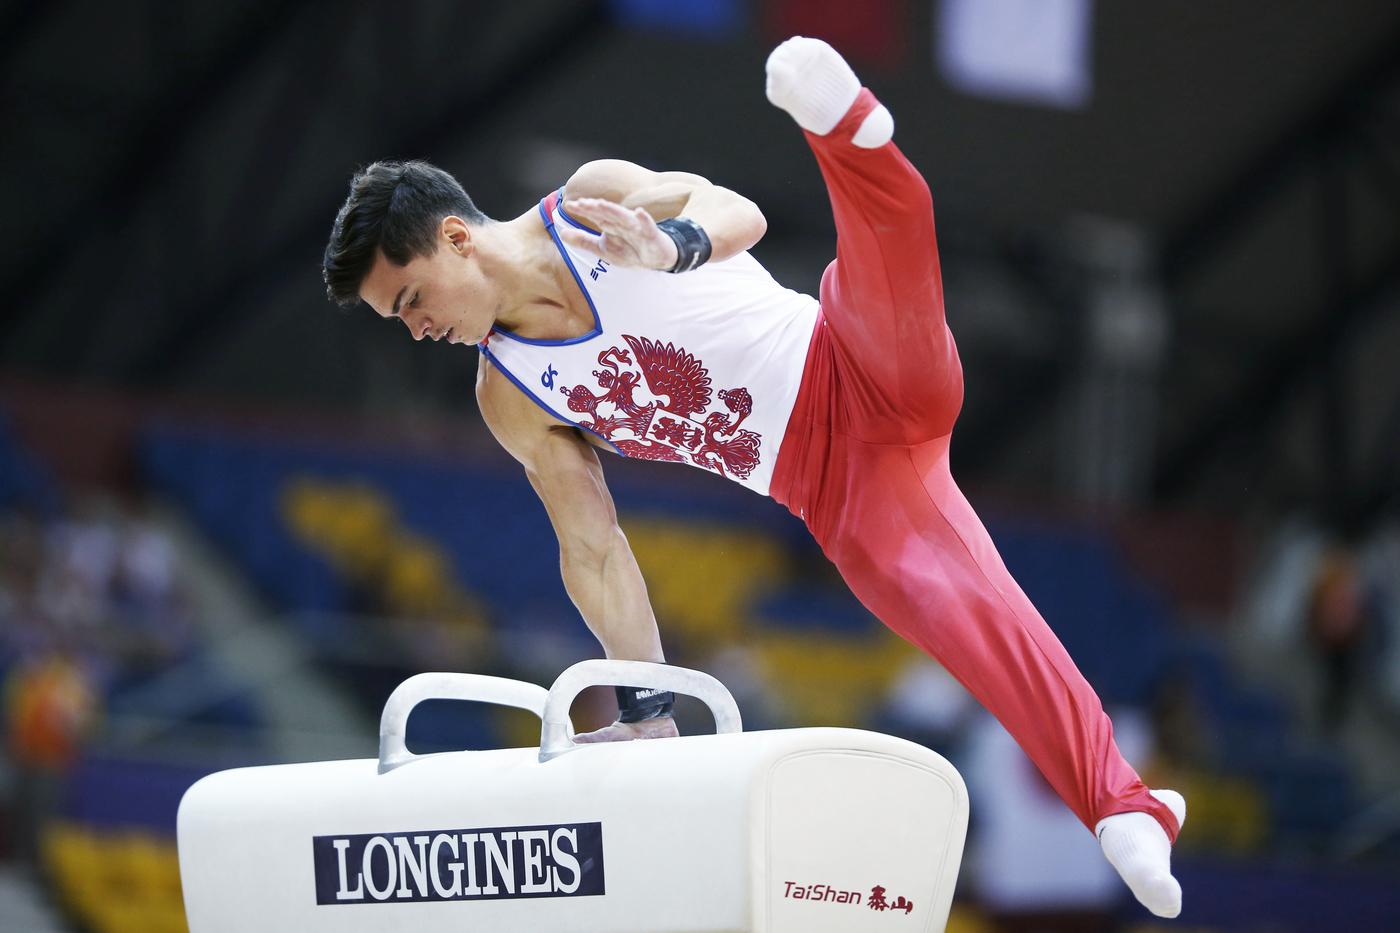 Longines Gymnastics Event: The Longines Prize for Elegance awarded to Russia's Angelina Melnikova and Russia's Artur Dalaloyan at the 48th Artistic Gymnastics World Championships in Doha 4